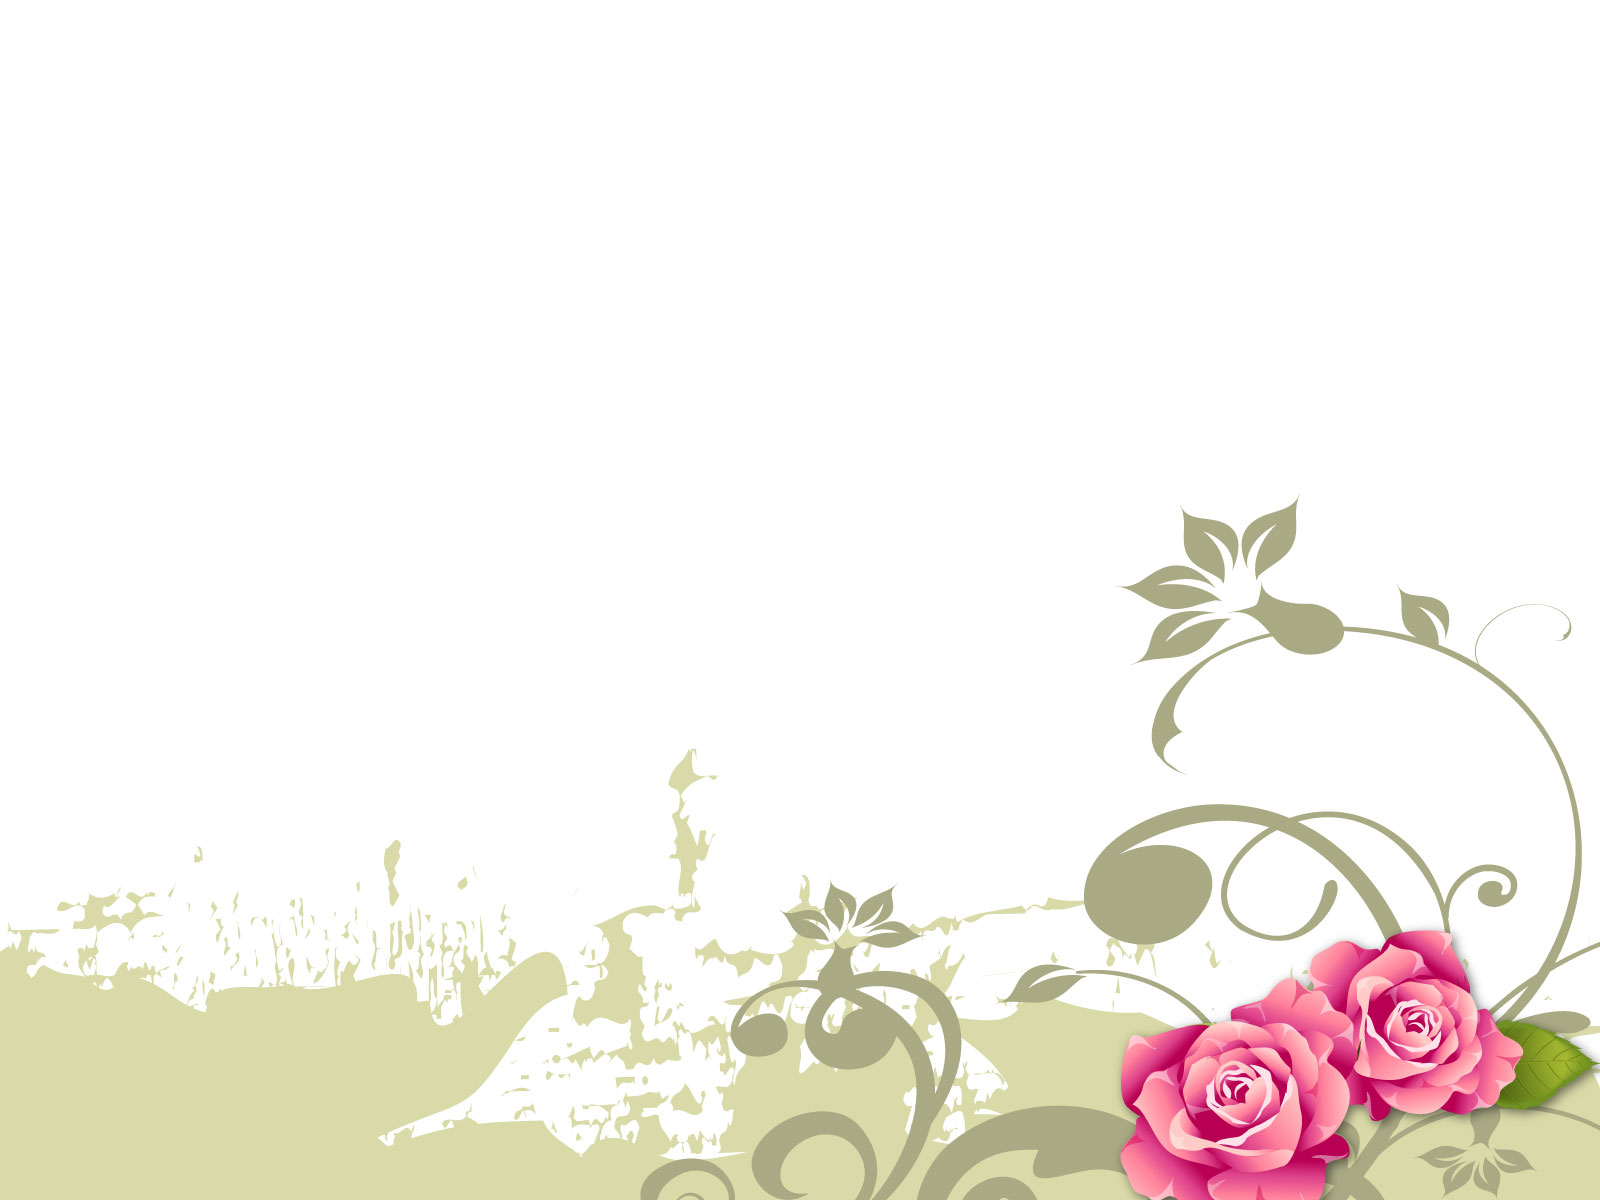 Backgrounds Pictures Images amp Photos  Photobucket